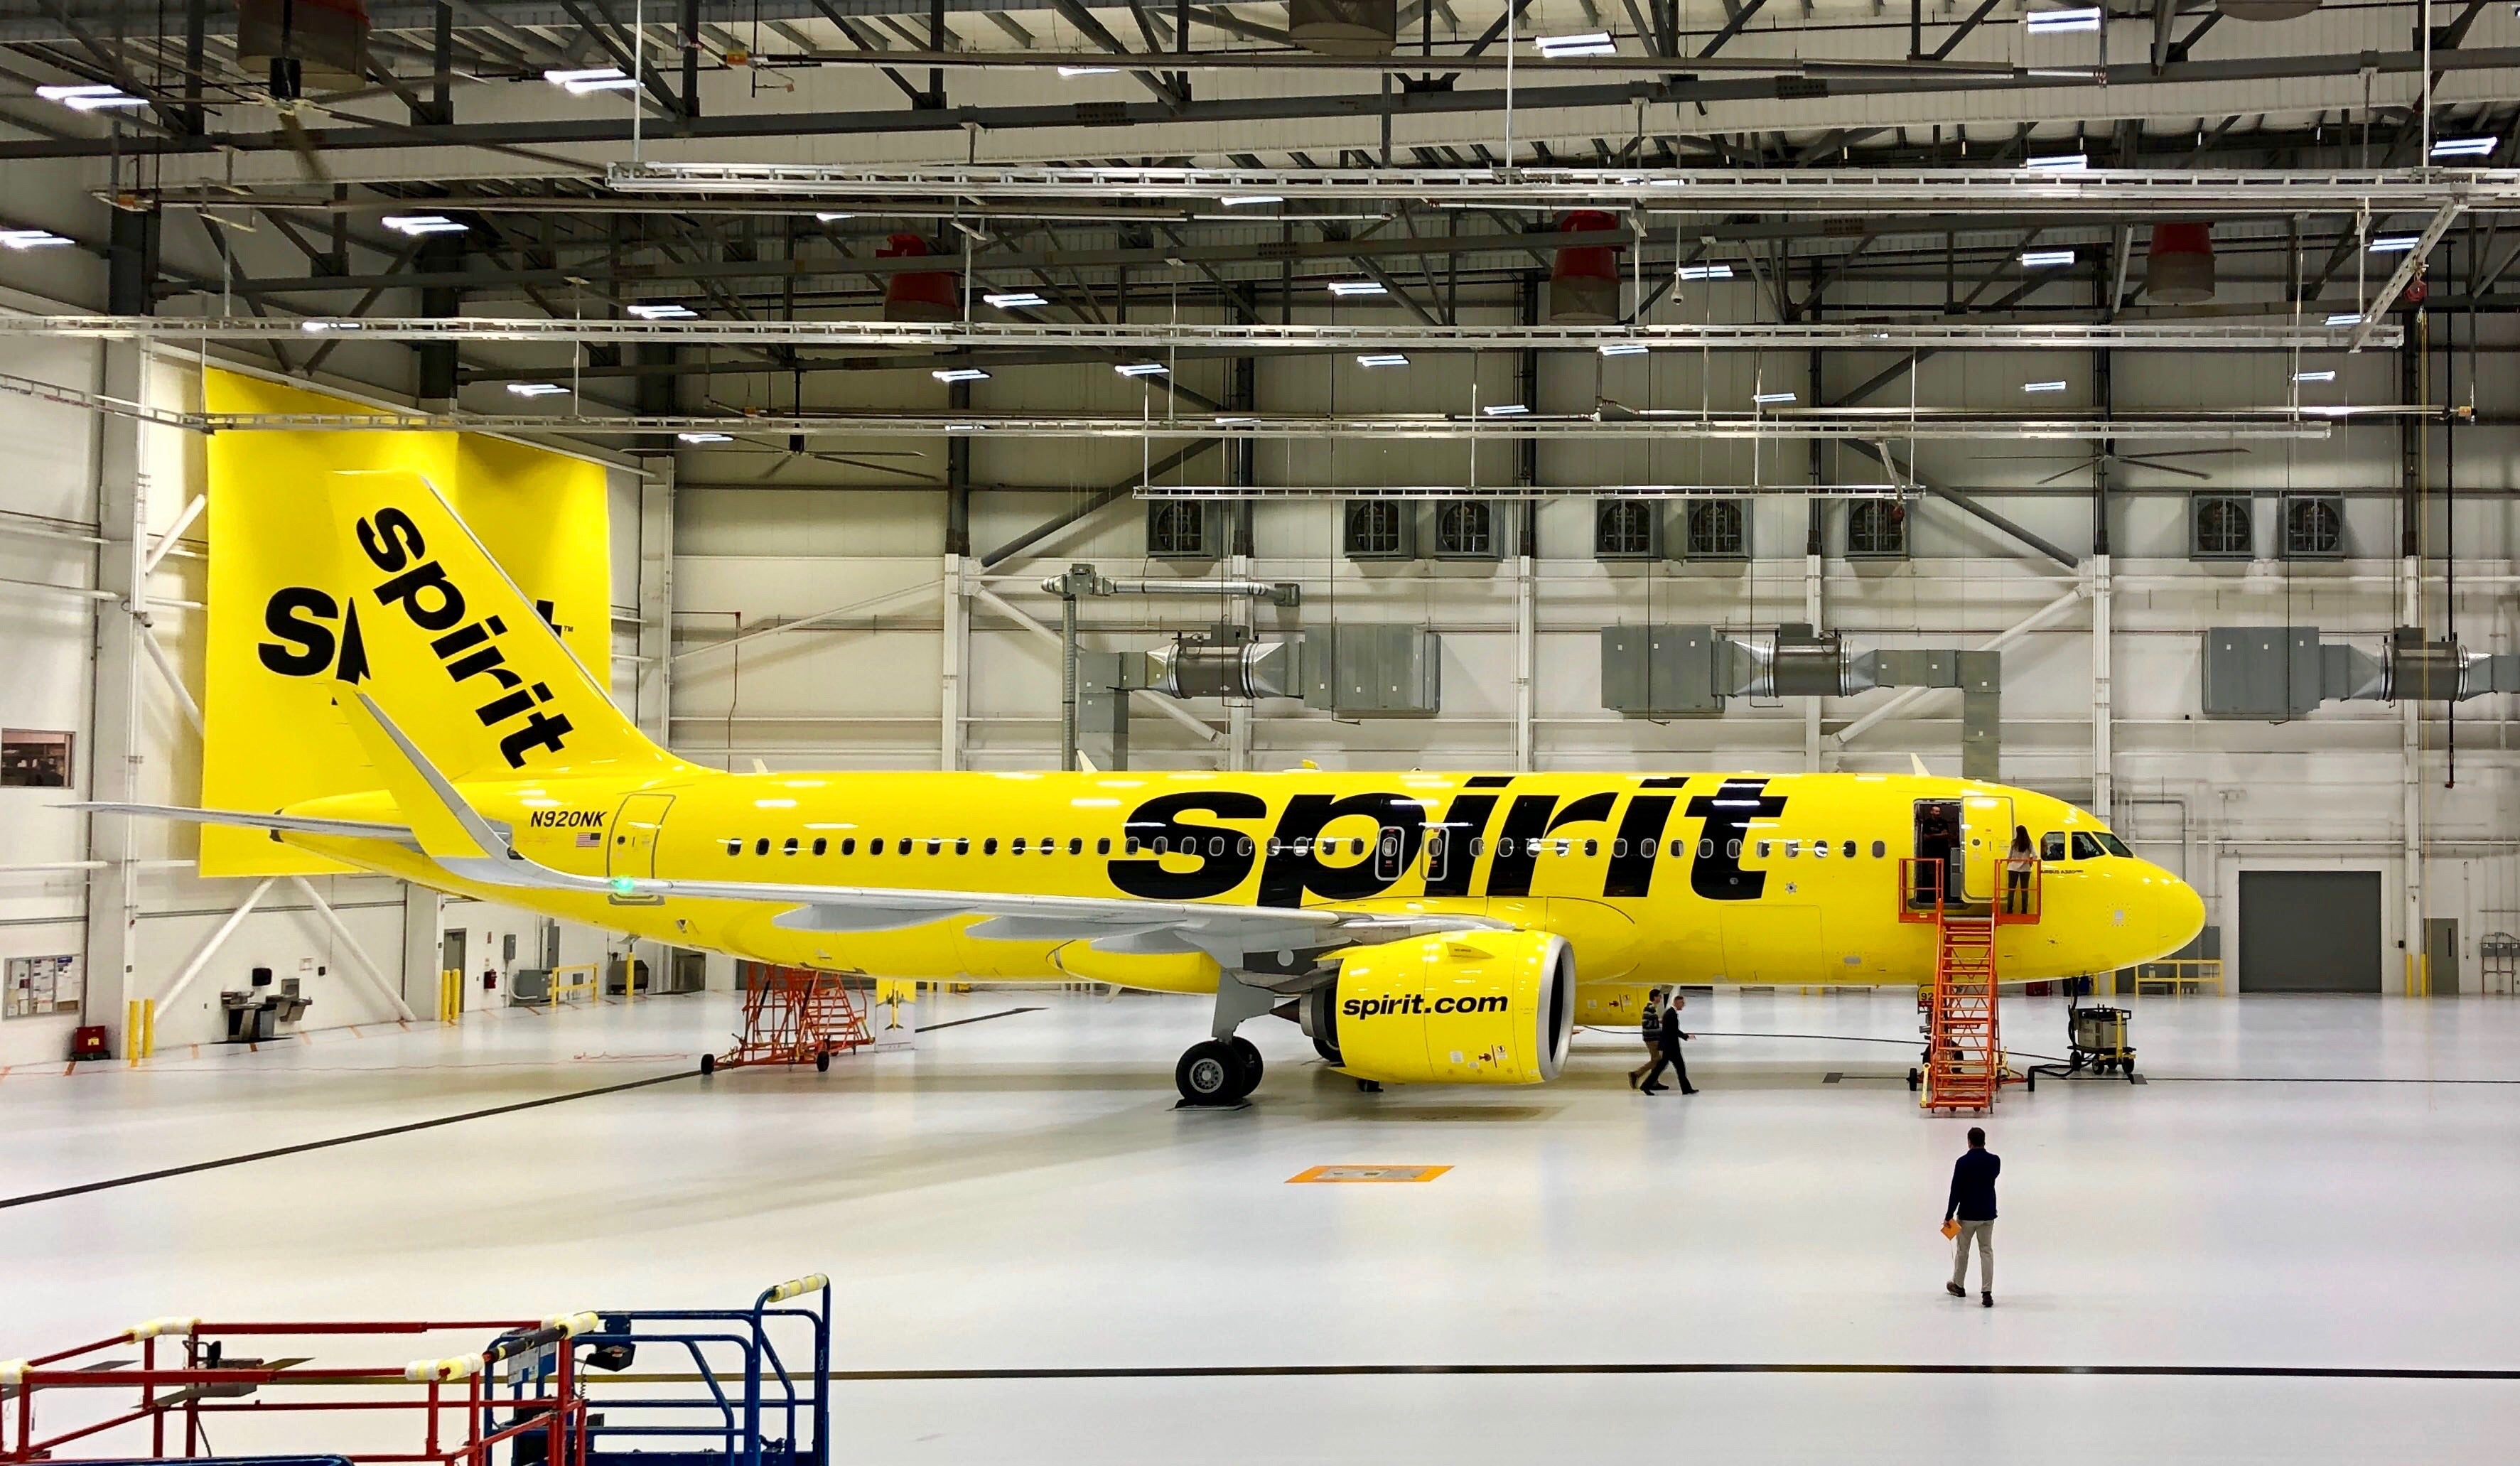 Spirit Airlines Inflight Wi Fi Is At Least A Year Late